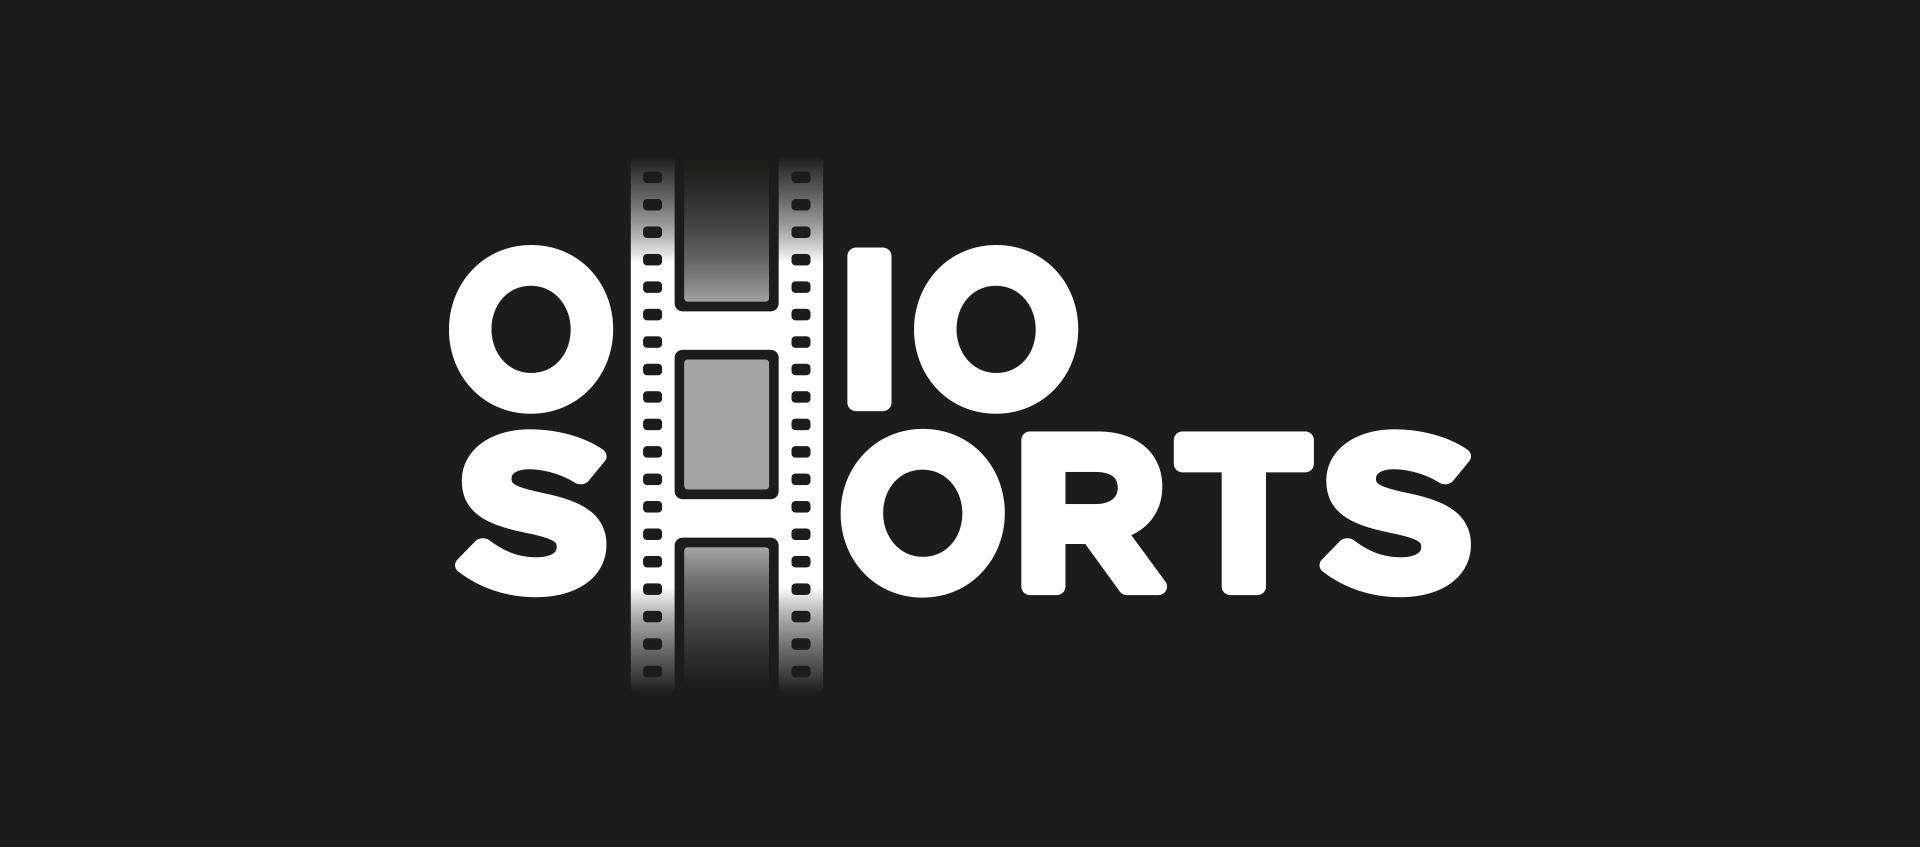 Ohio shorts logo